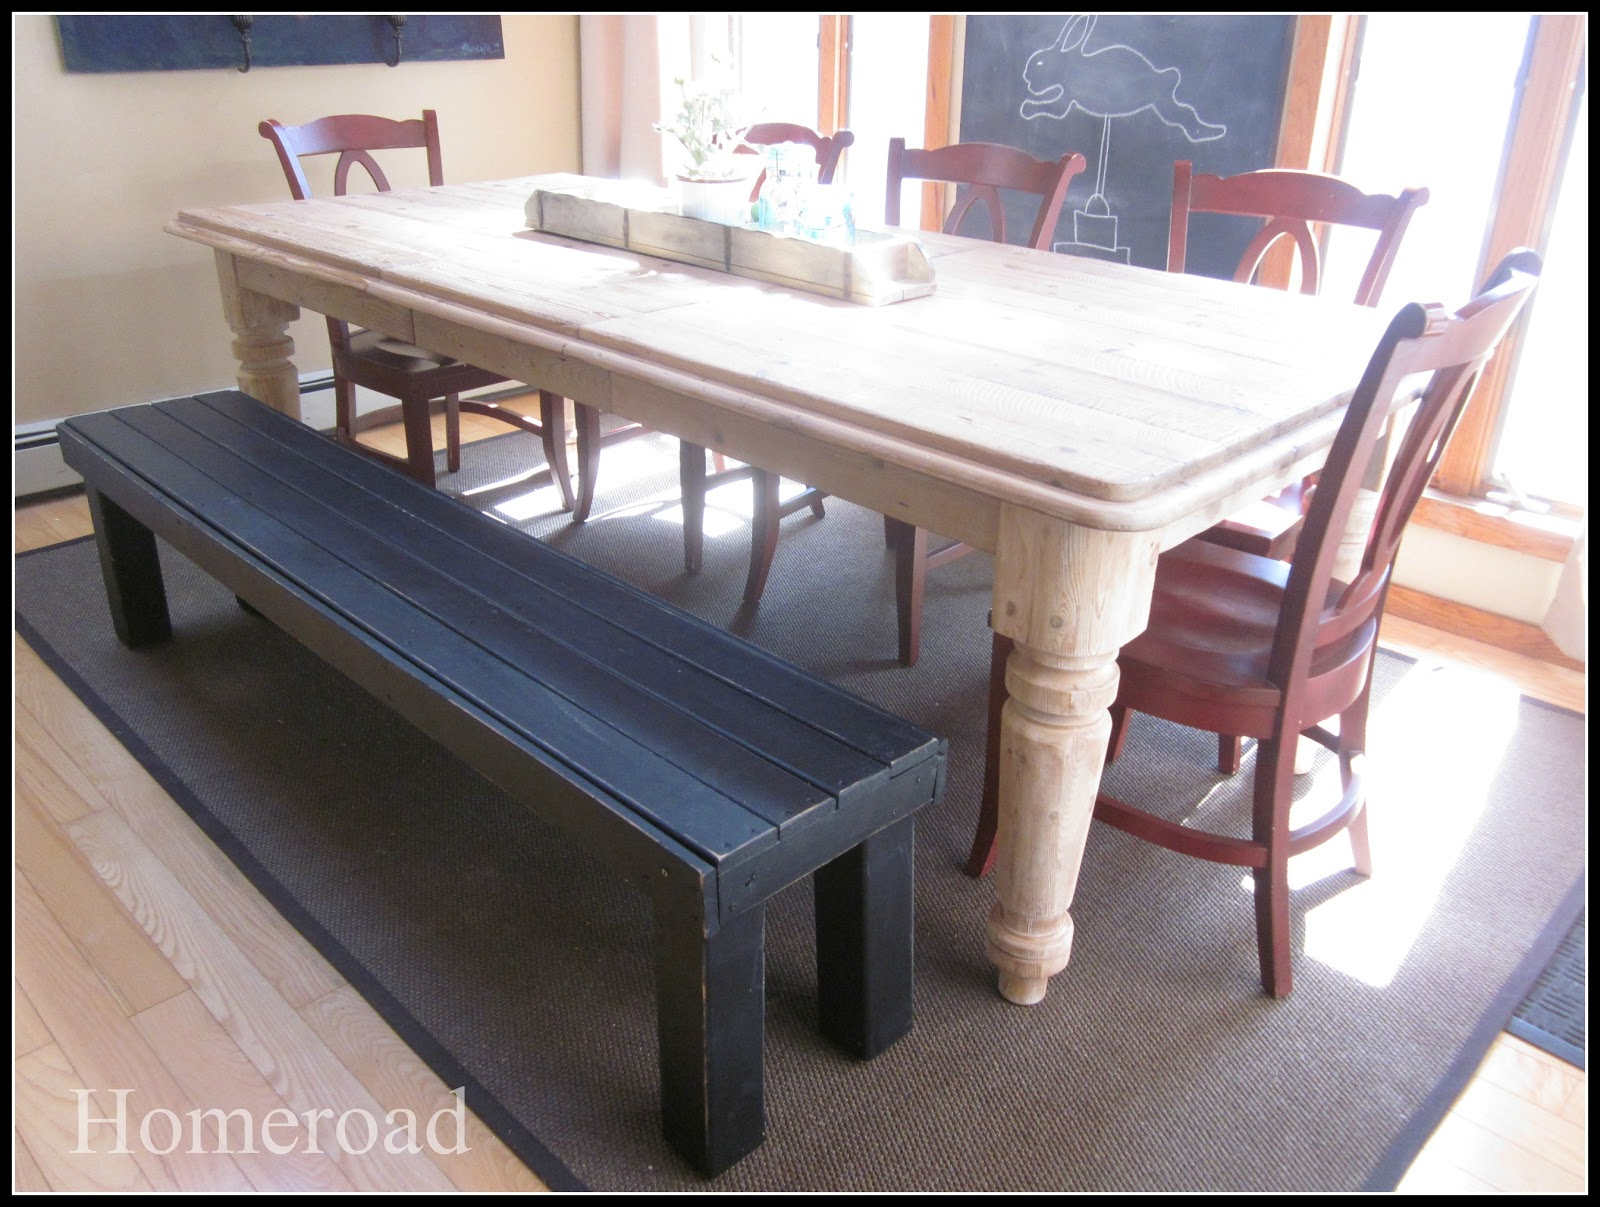 Homeroad DIY Farmhouse Bench